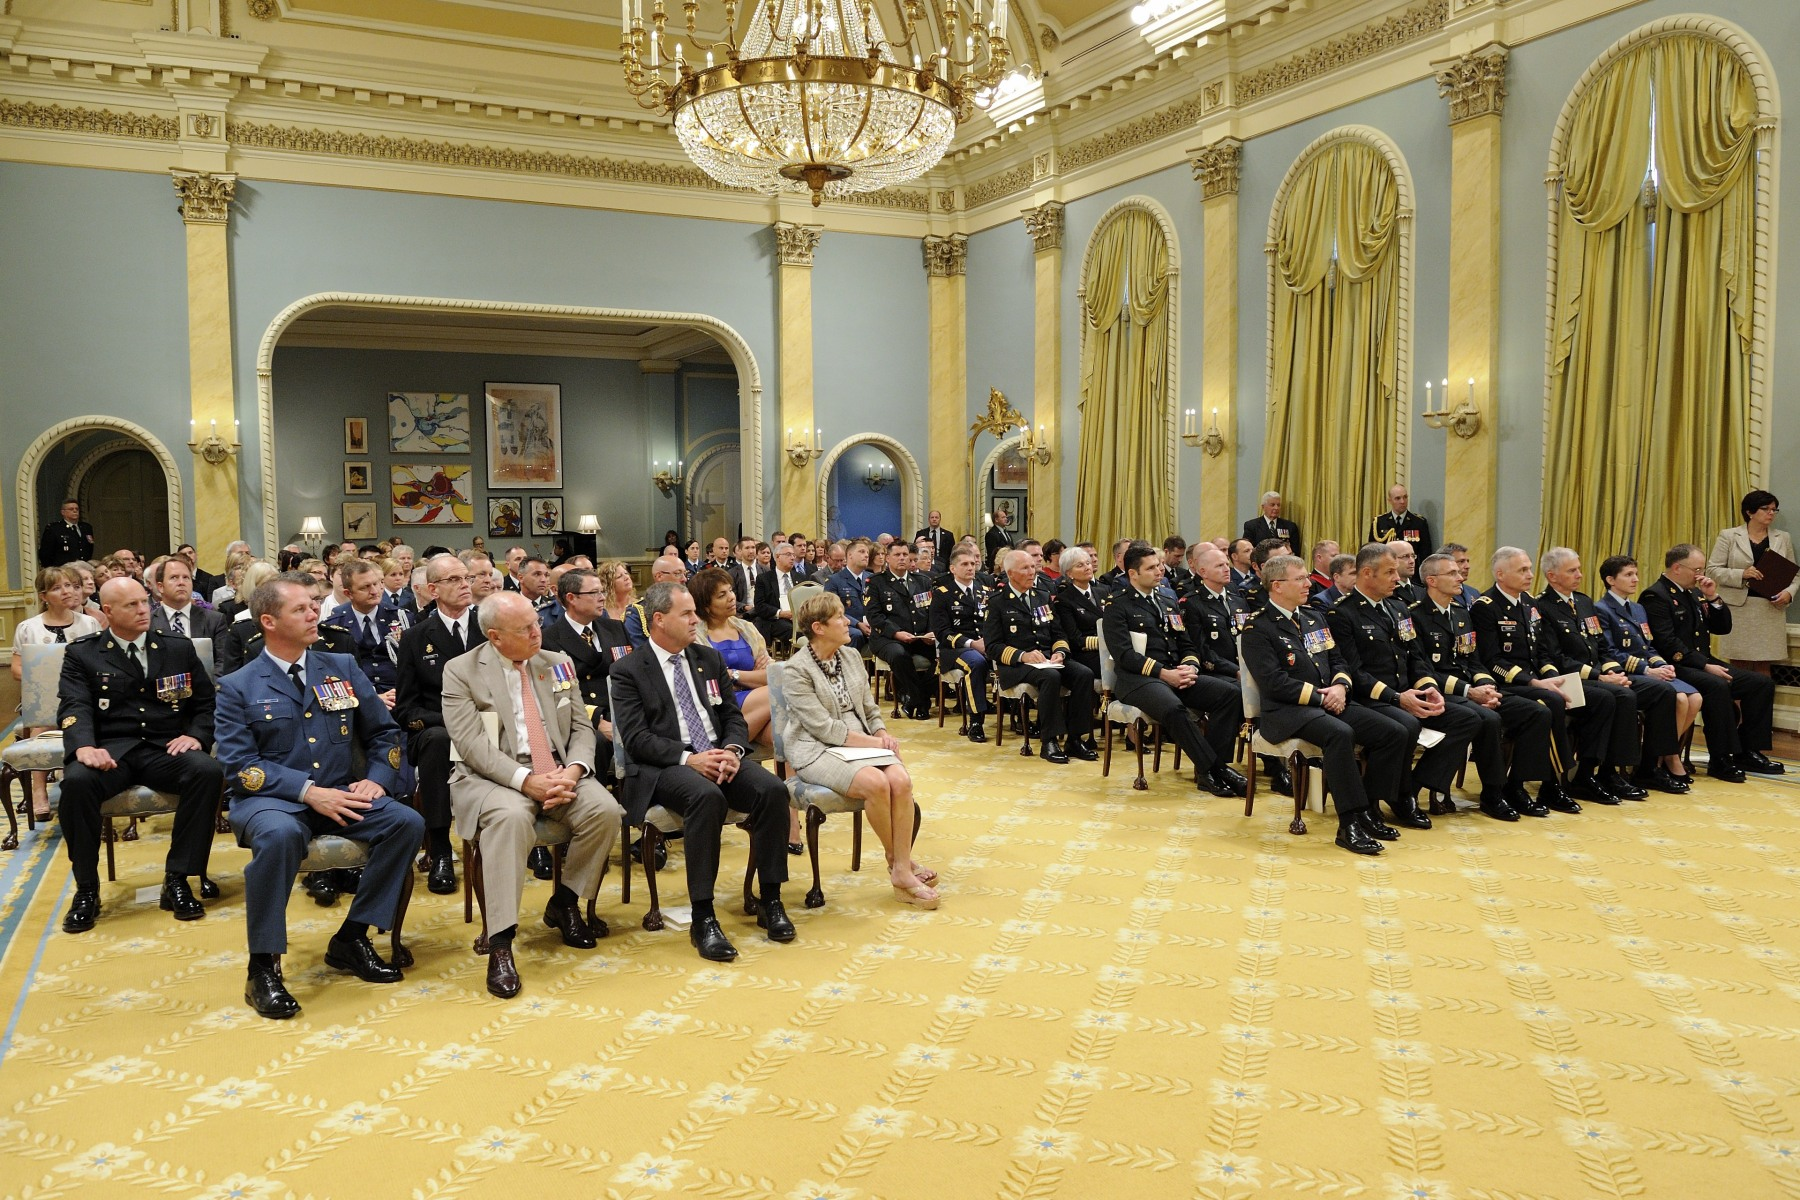 The Meritorious Service Decorations are an important part of the Canadian Honours System, which recognizes excellence. Meritorious Service Decorations honour either a single achievement or an activity over a specified period. The Meritorious Service Decorations are open to both Canadians and non-Canadians.